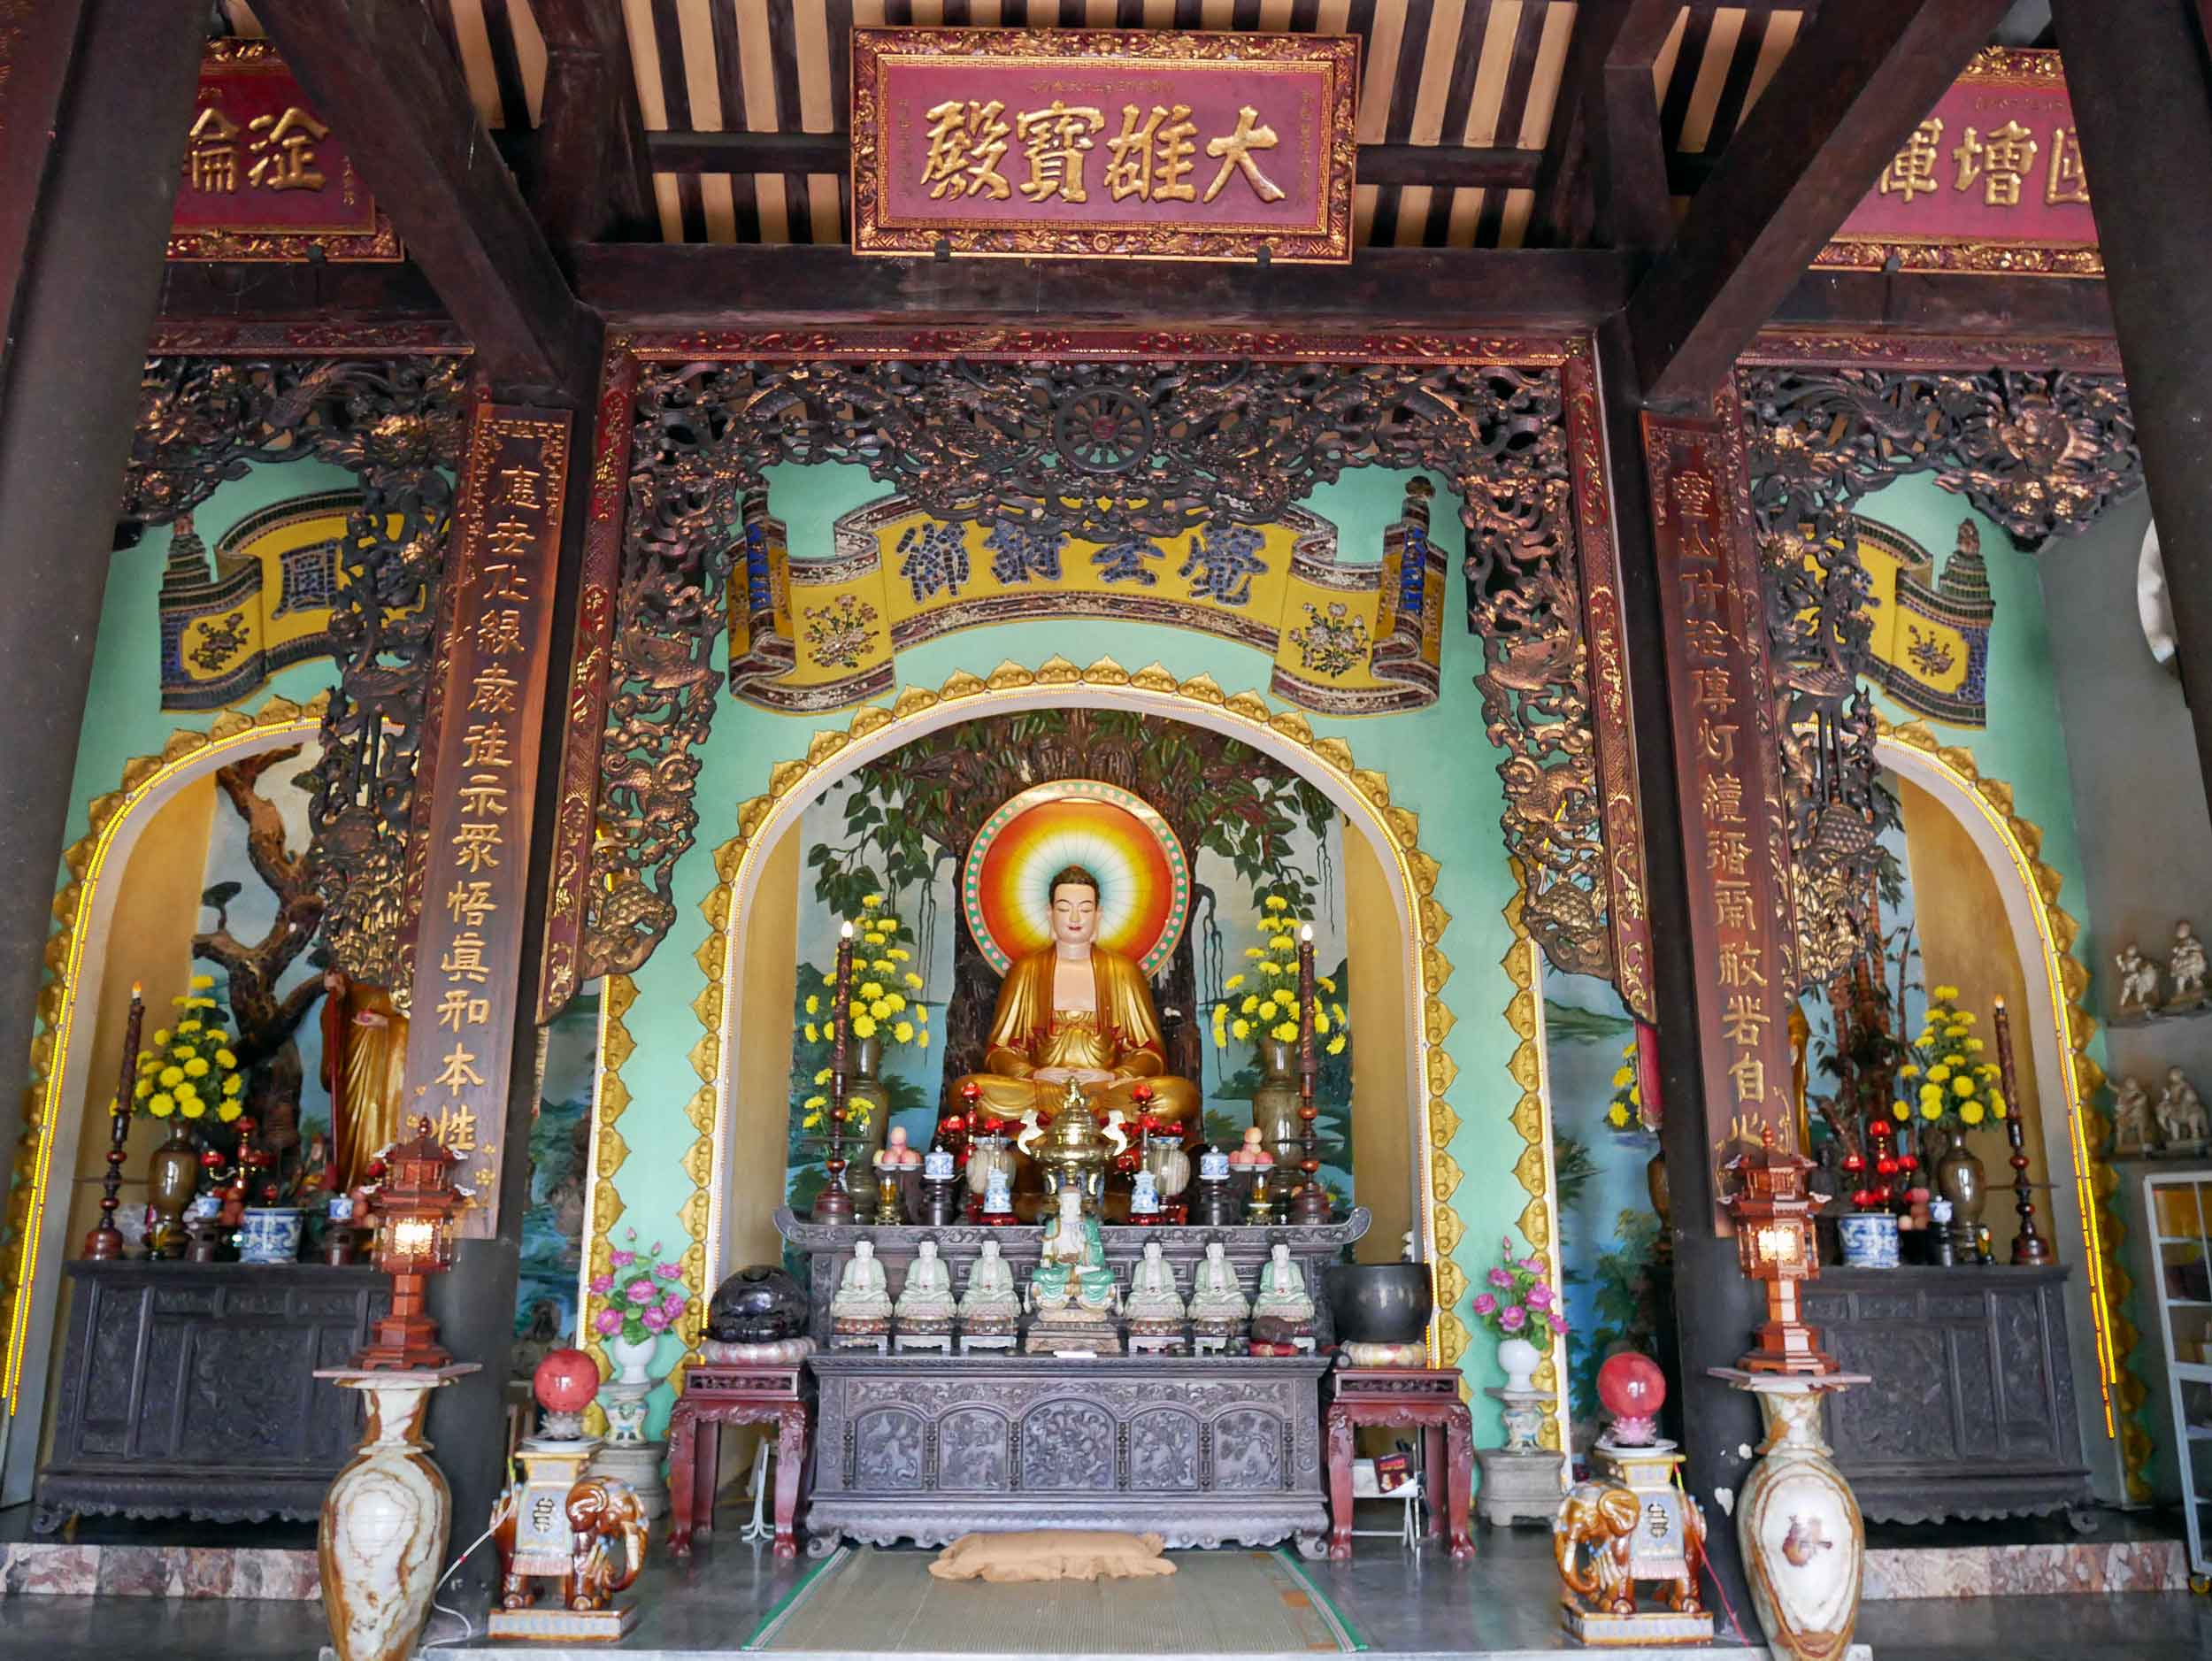 The bright, colorful interior of one of the pagodas dotting Marble Mountain.